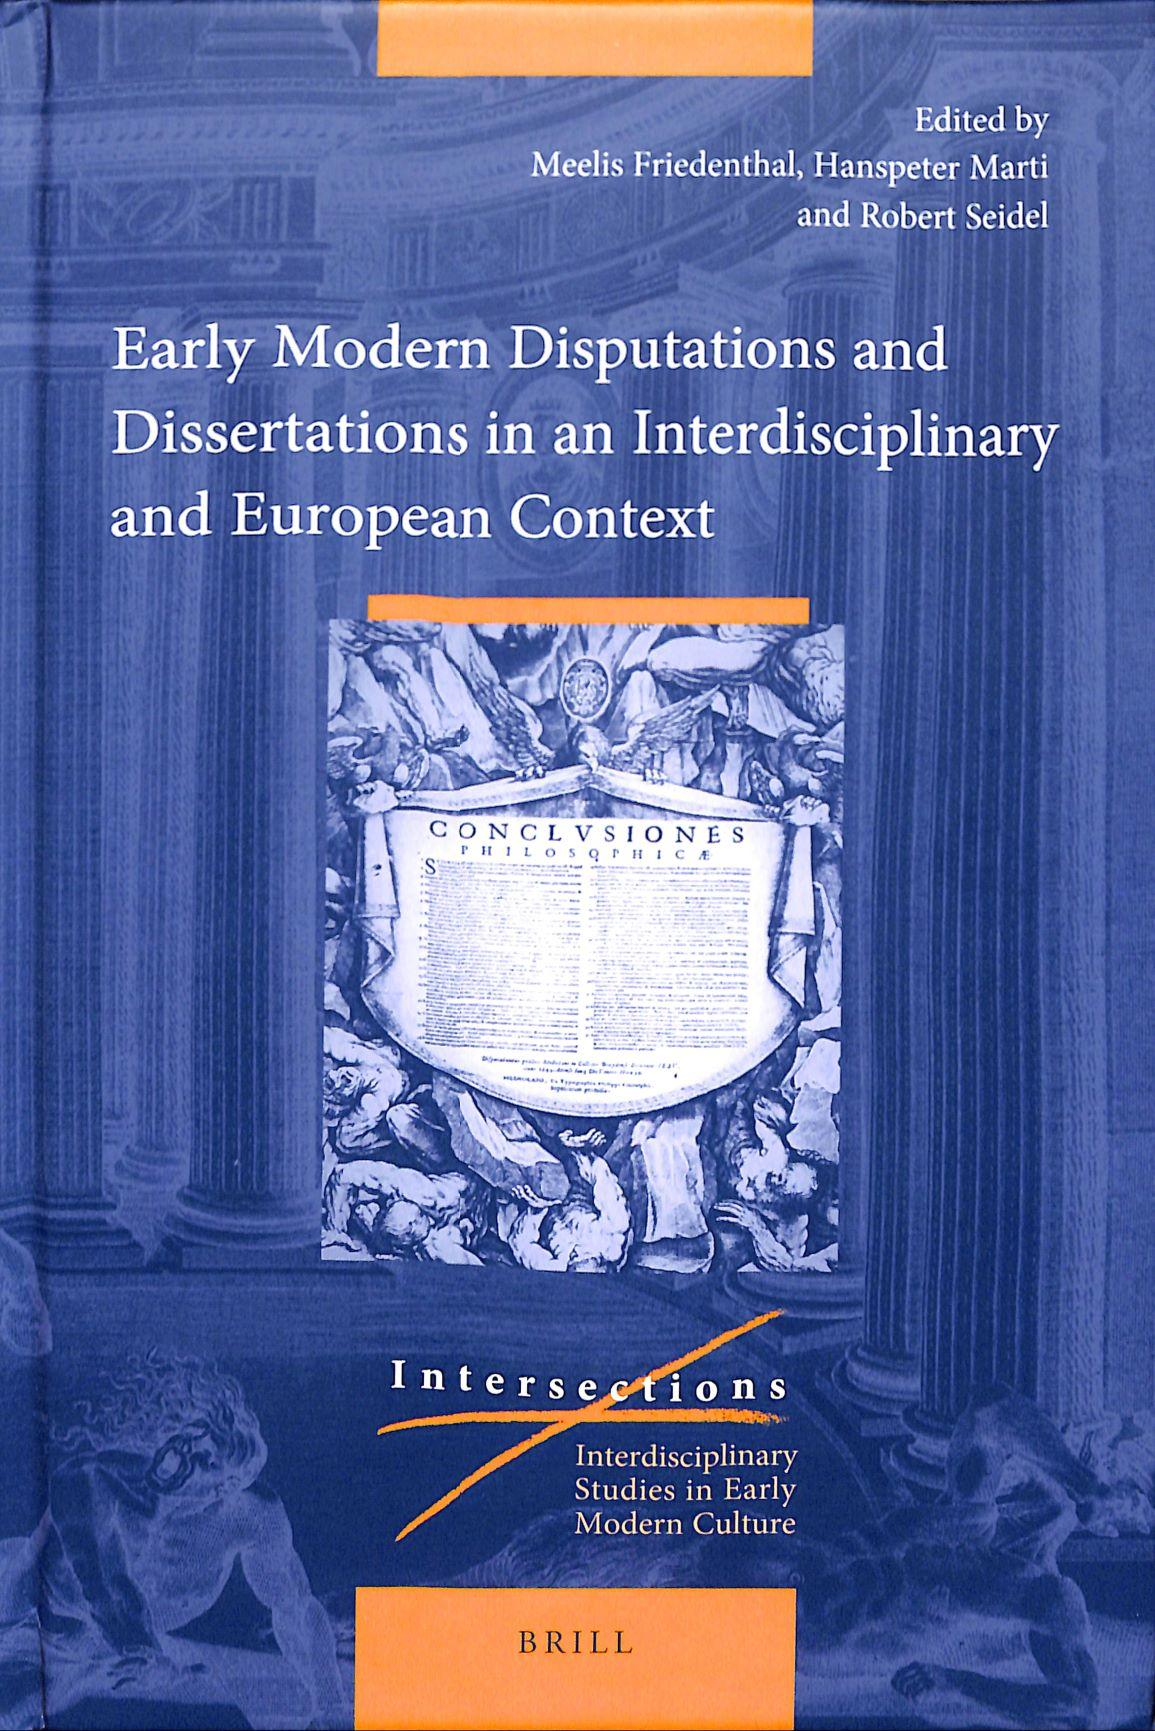 Early Modern Disputations and Dissertations in an Interdisciplinary and European Context